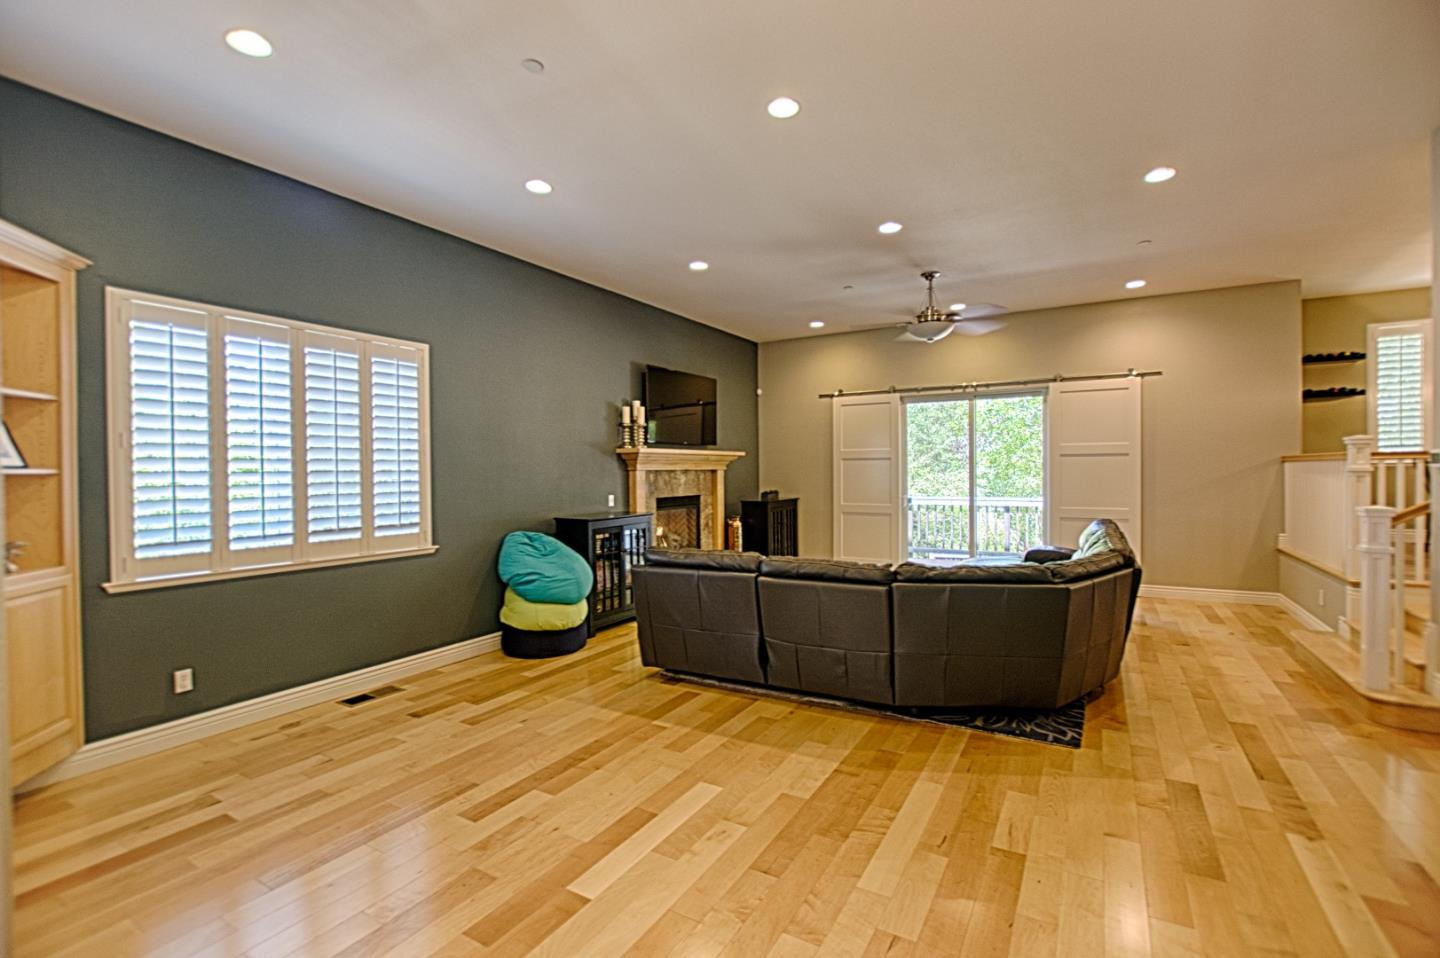 Additional photo for property listing at 116 Kelly Way 116 Kelly Way Scotts Valley, California 95066 United States